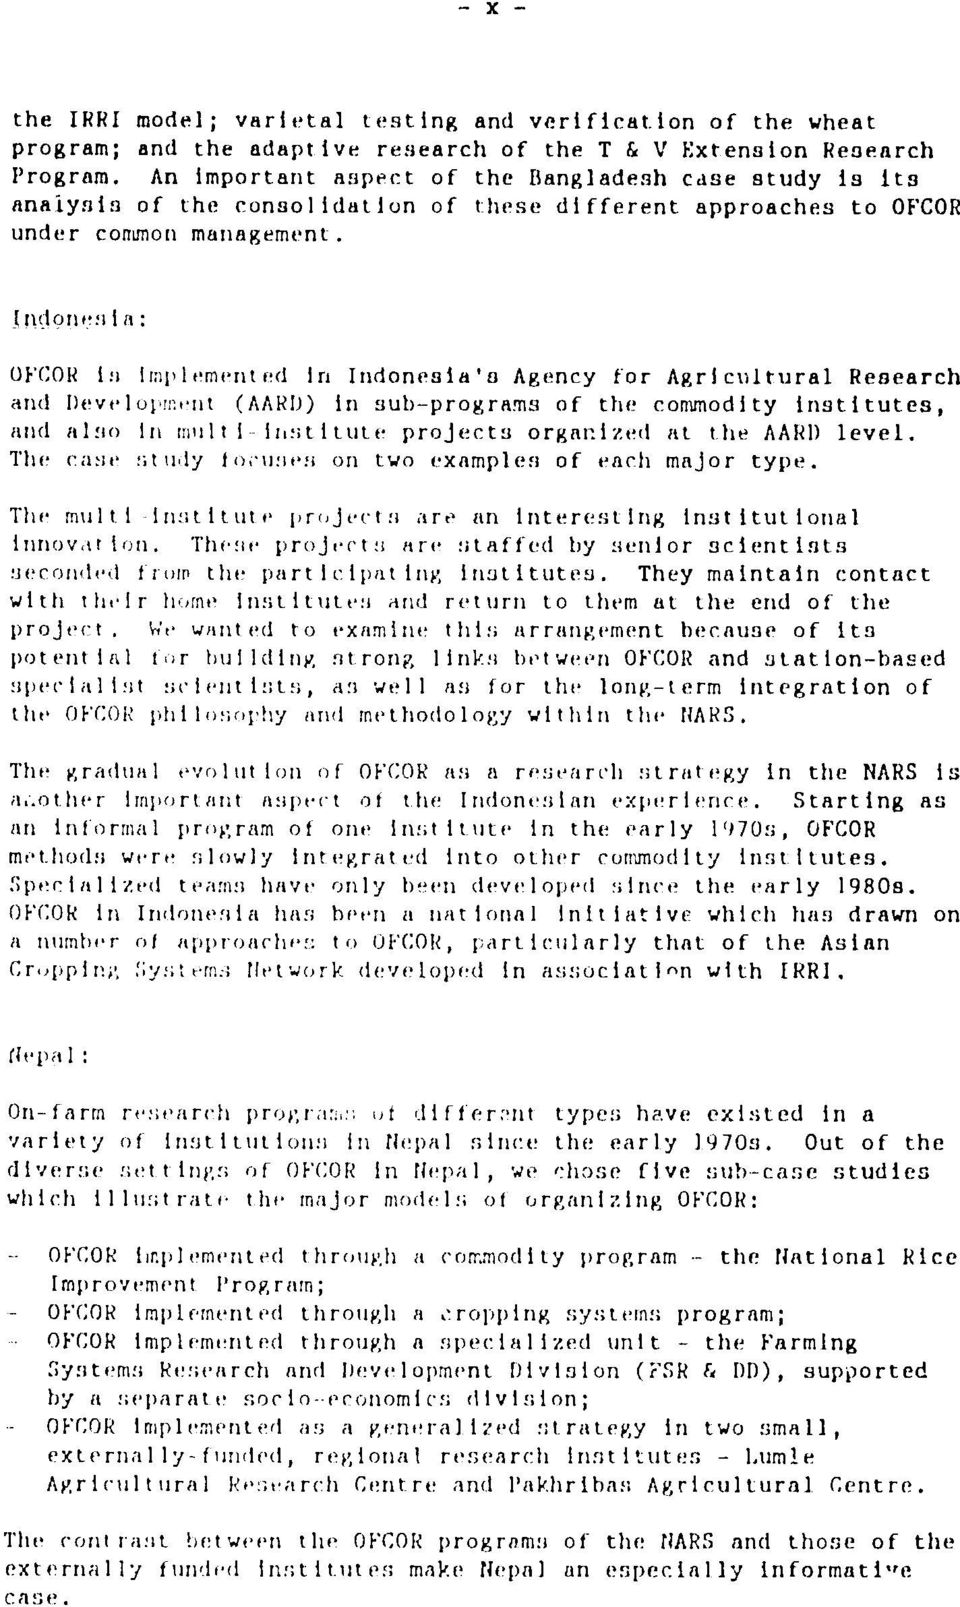 ongni: OFCOR In Implemented In Indonesia's Agency for Agricultural Research and Dtevelopment (AARD) in sub-programs of the commodity institutes, and also In multi lootsitute projects organized at the